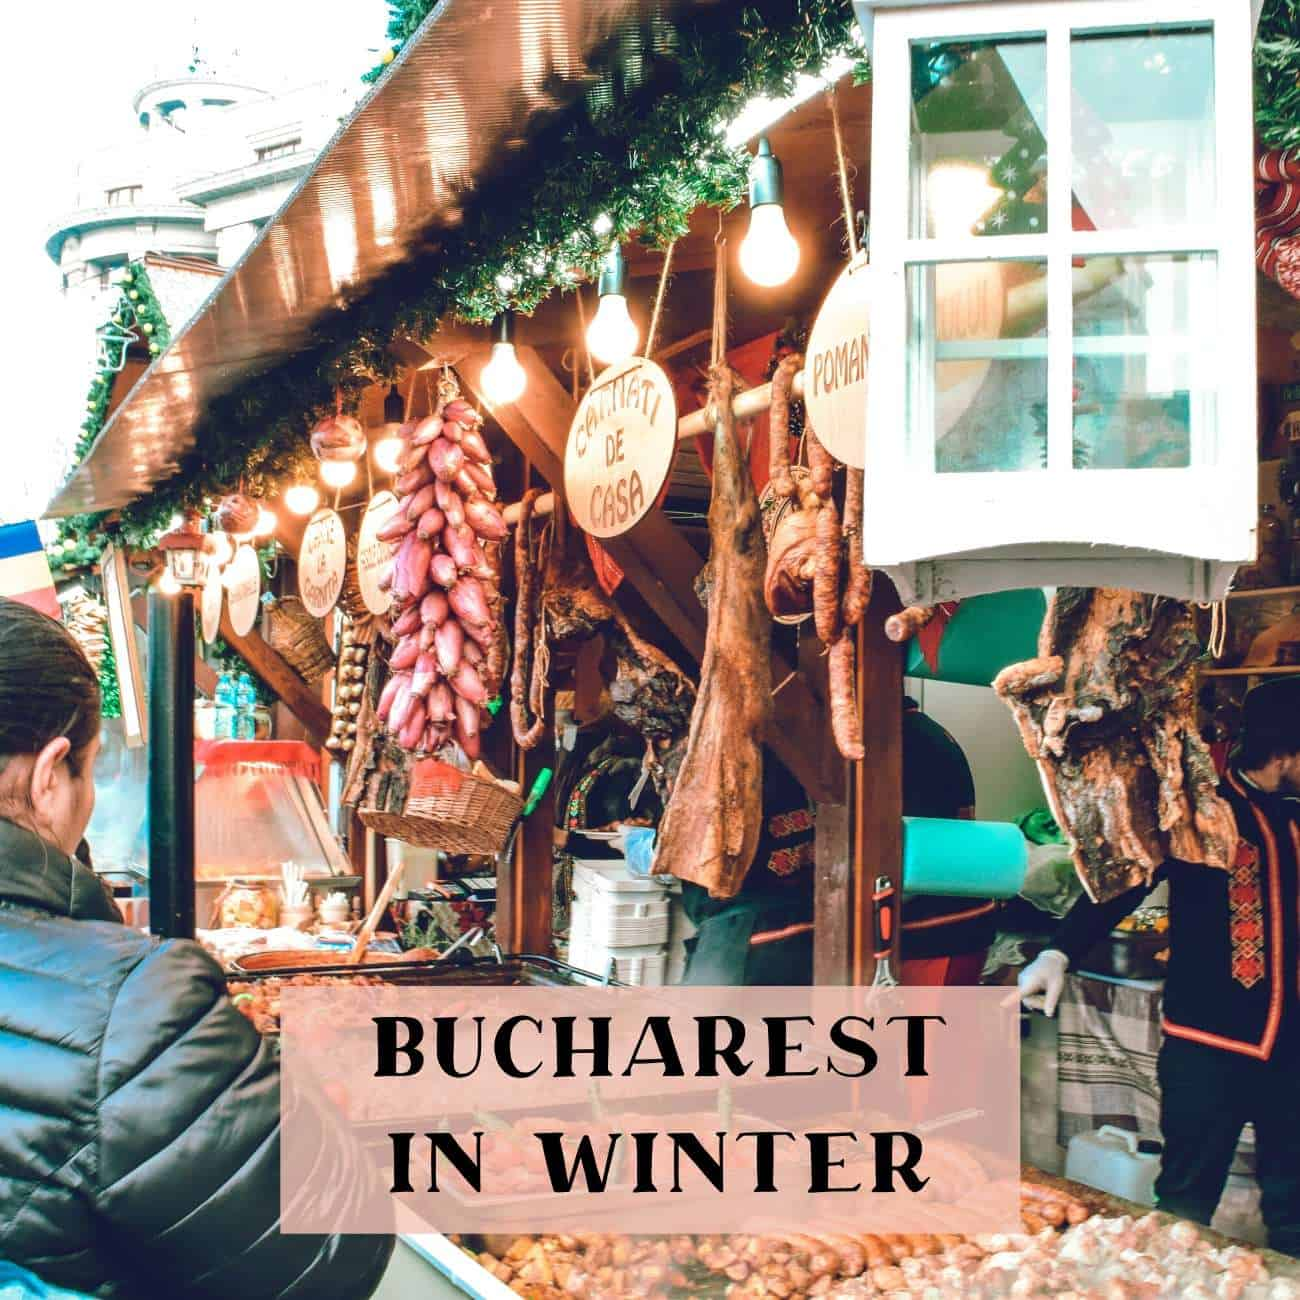 Things to do in Bucharest in winter